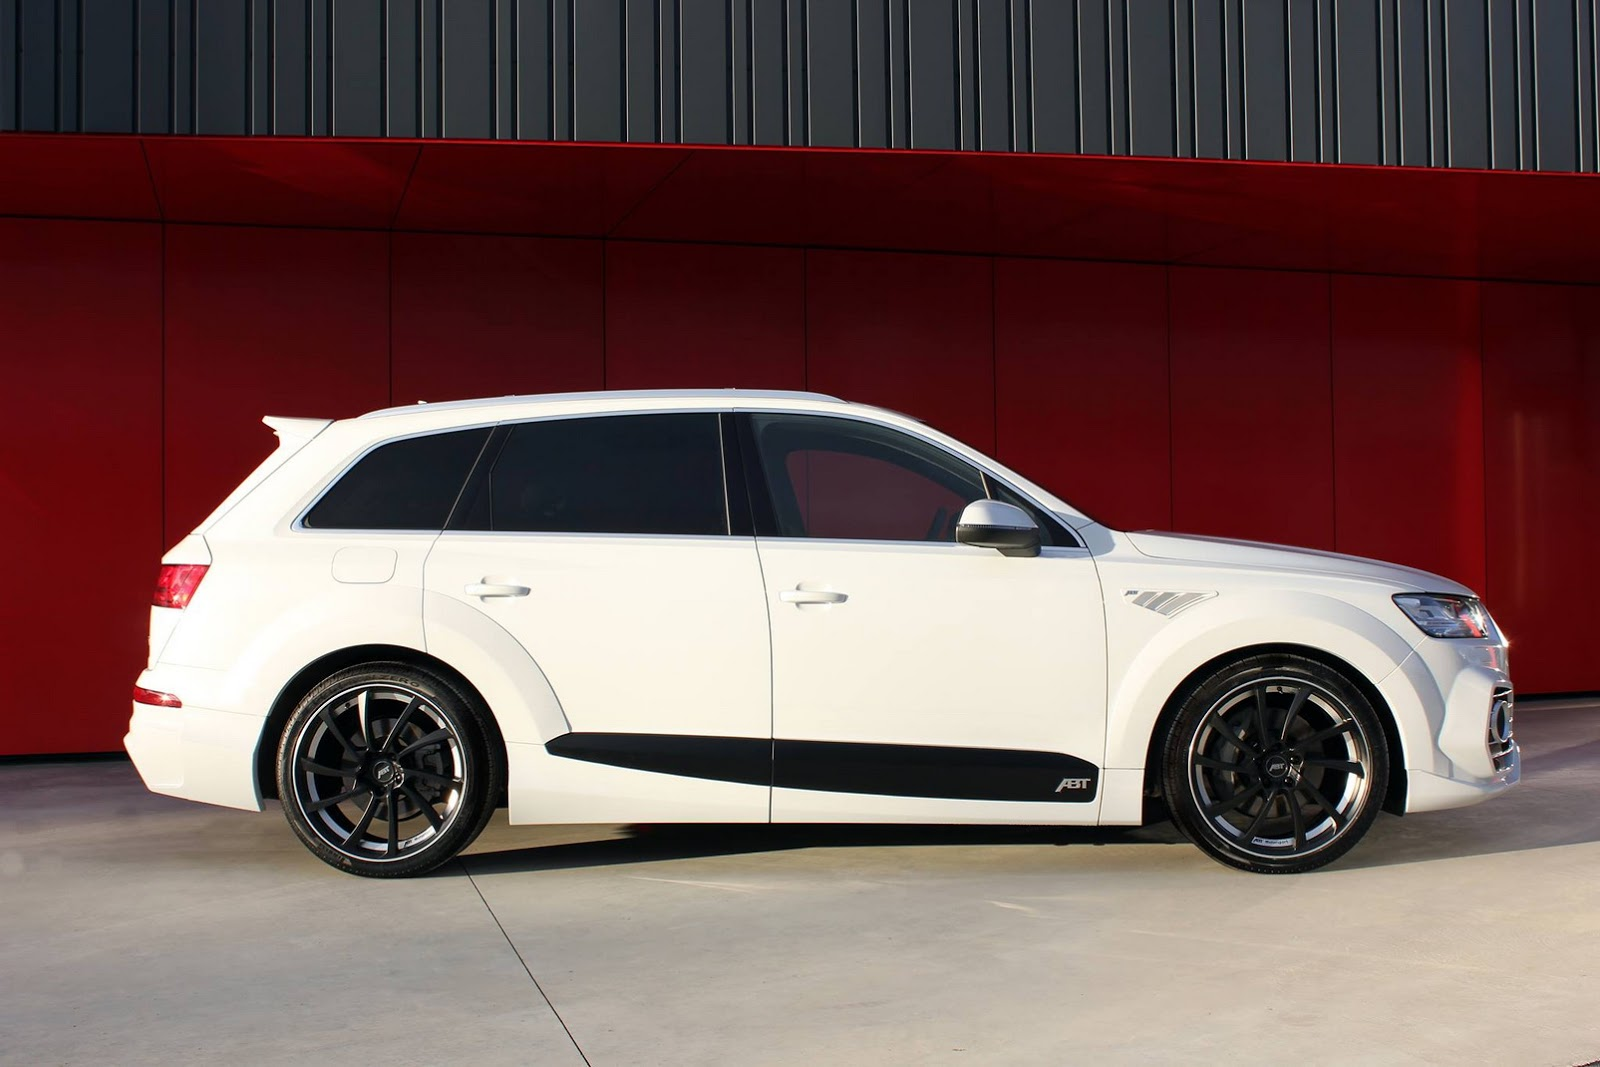 audi tuning abt 39 s audi qs7 is one mean looking q7. Black Bedroom Furniture Sets. Home Design Ideas